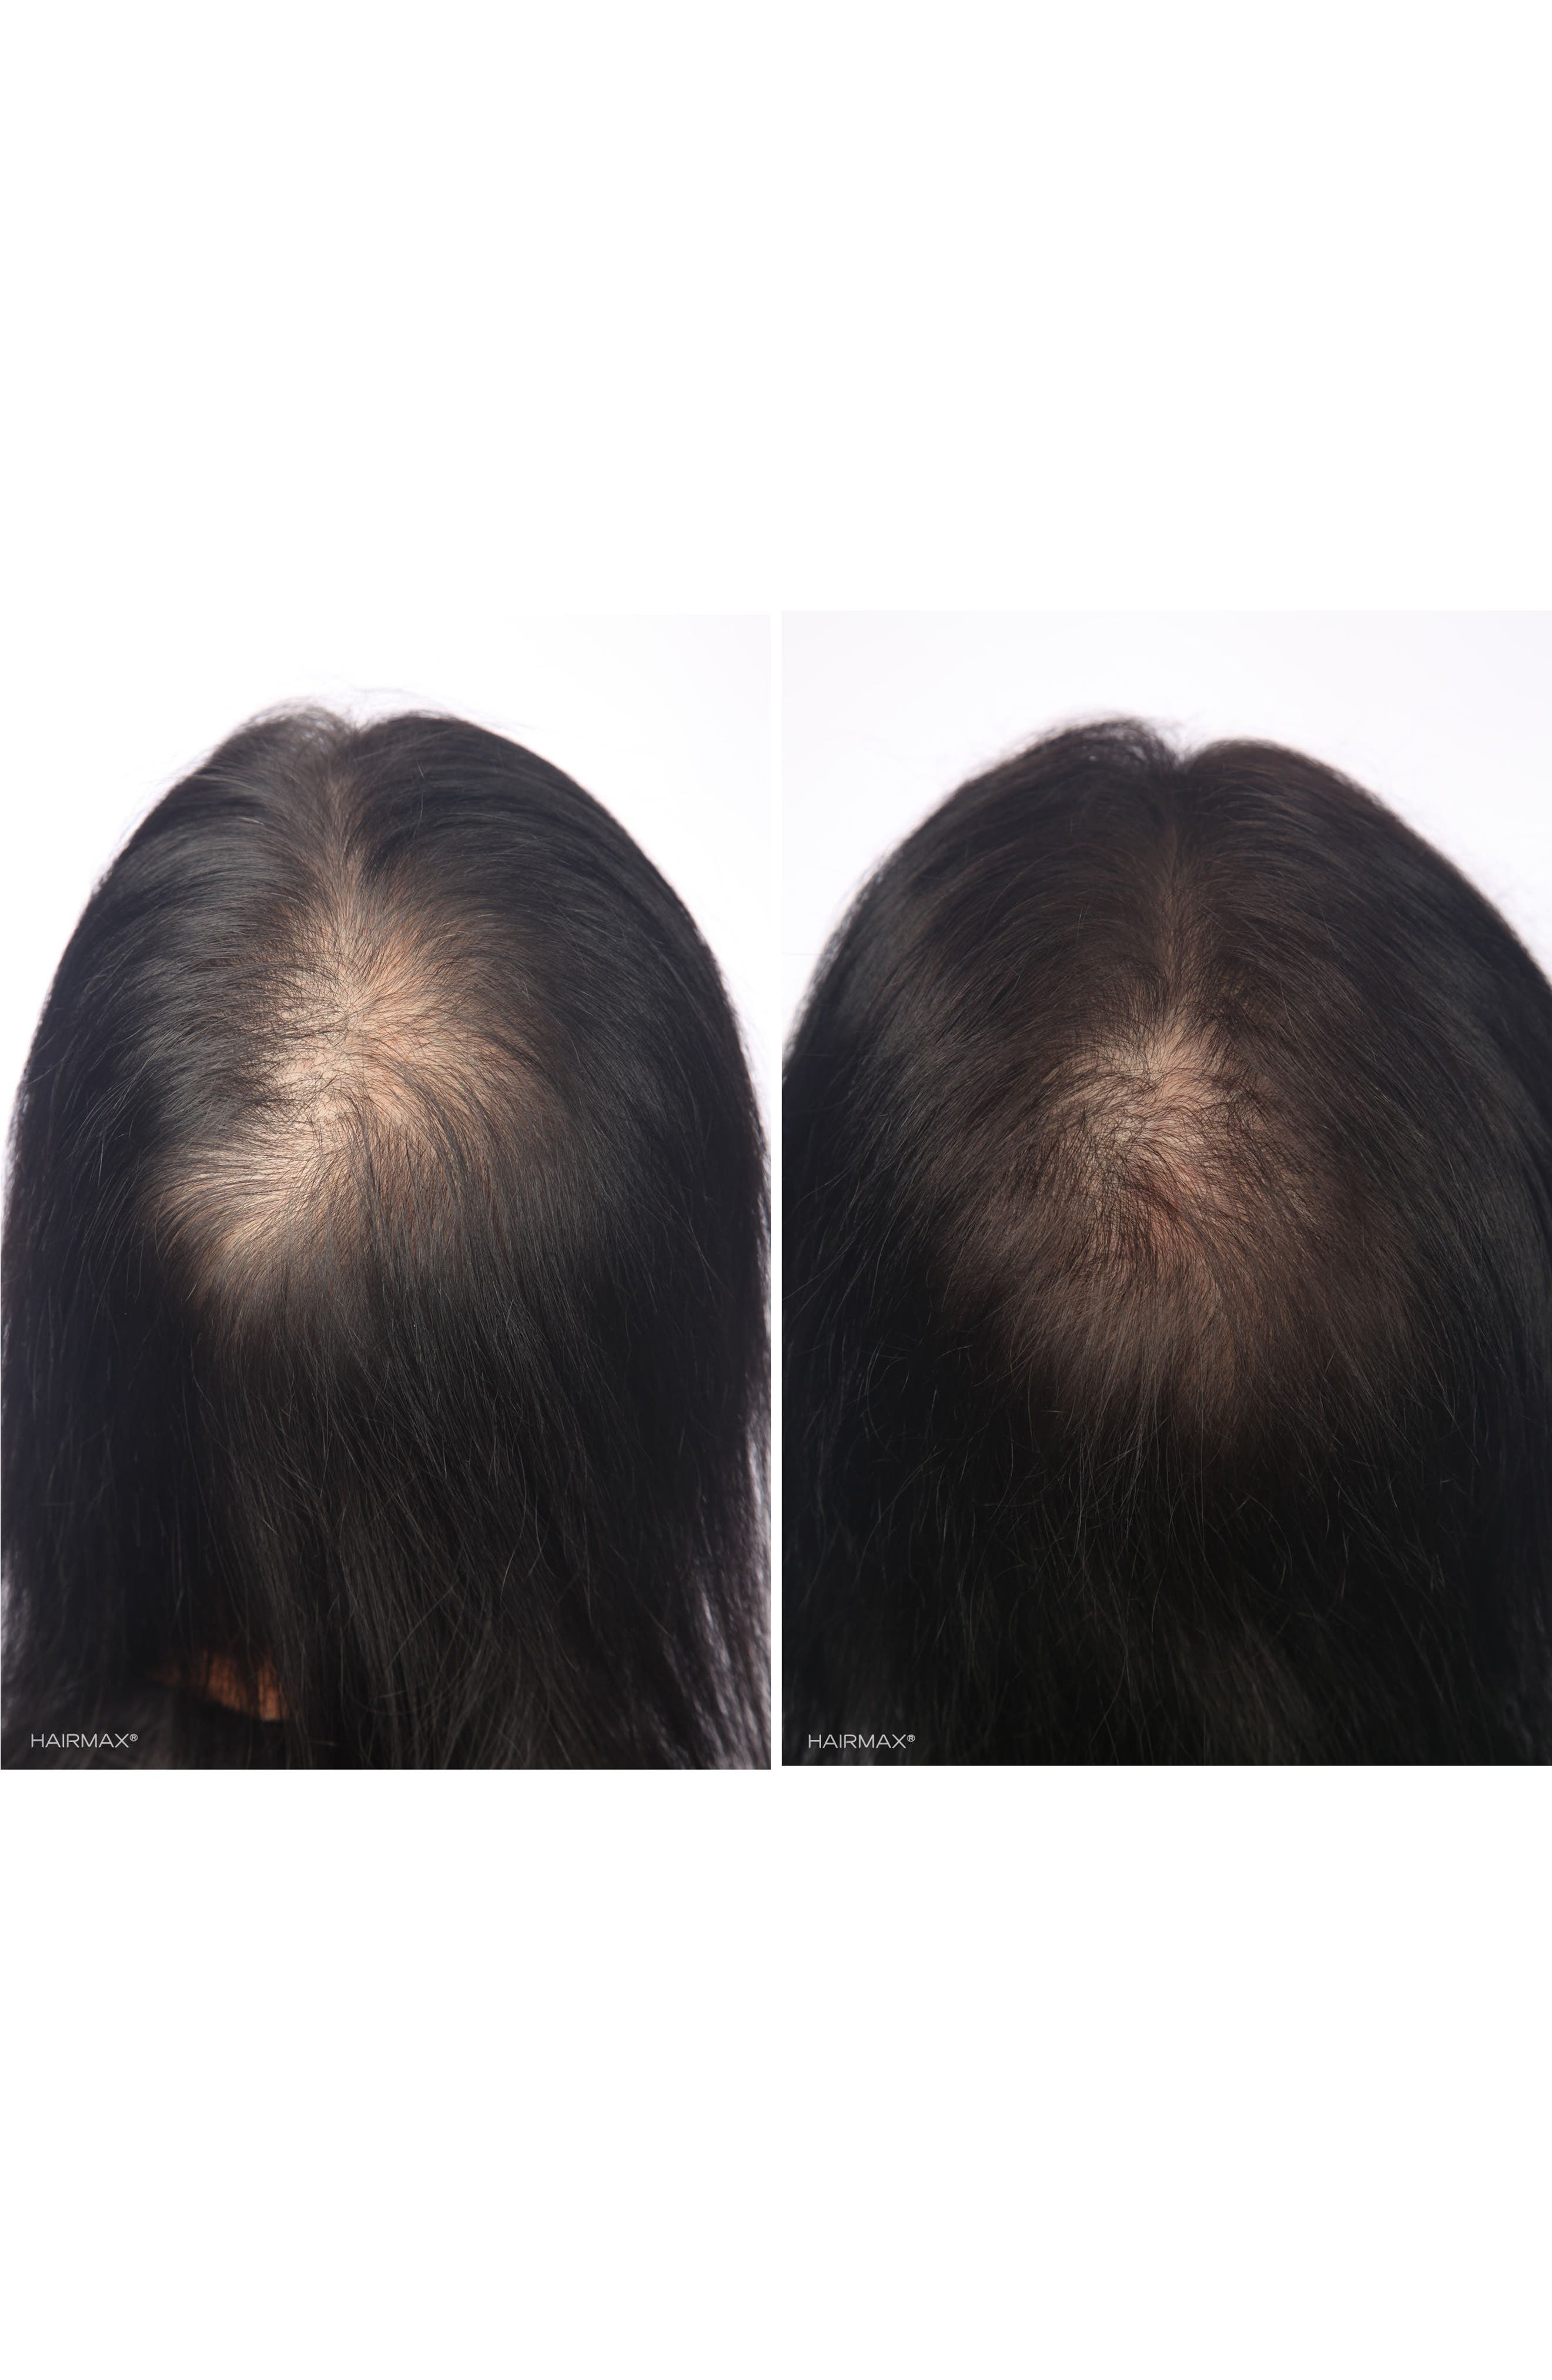 'LaserBand 82' Laser Hair Regrowth System,                             Alternate thumbnail 7, color,                             NO COLOR